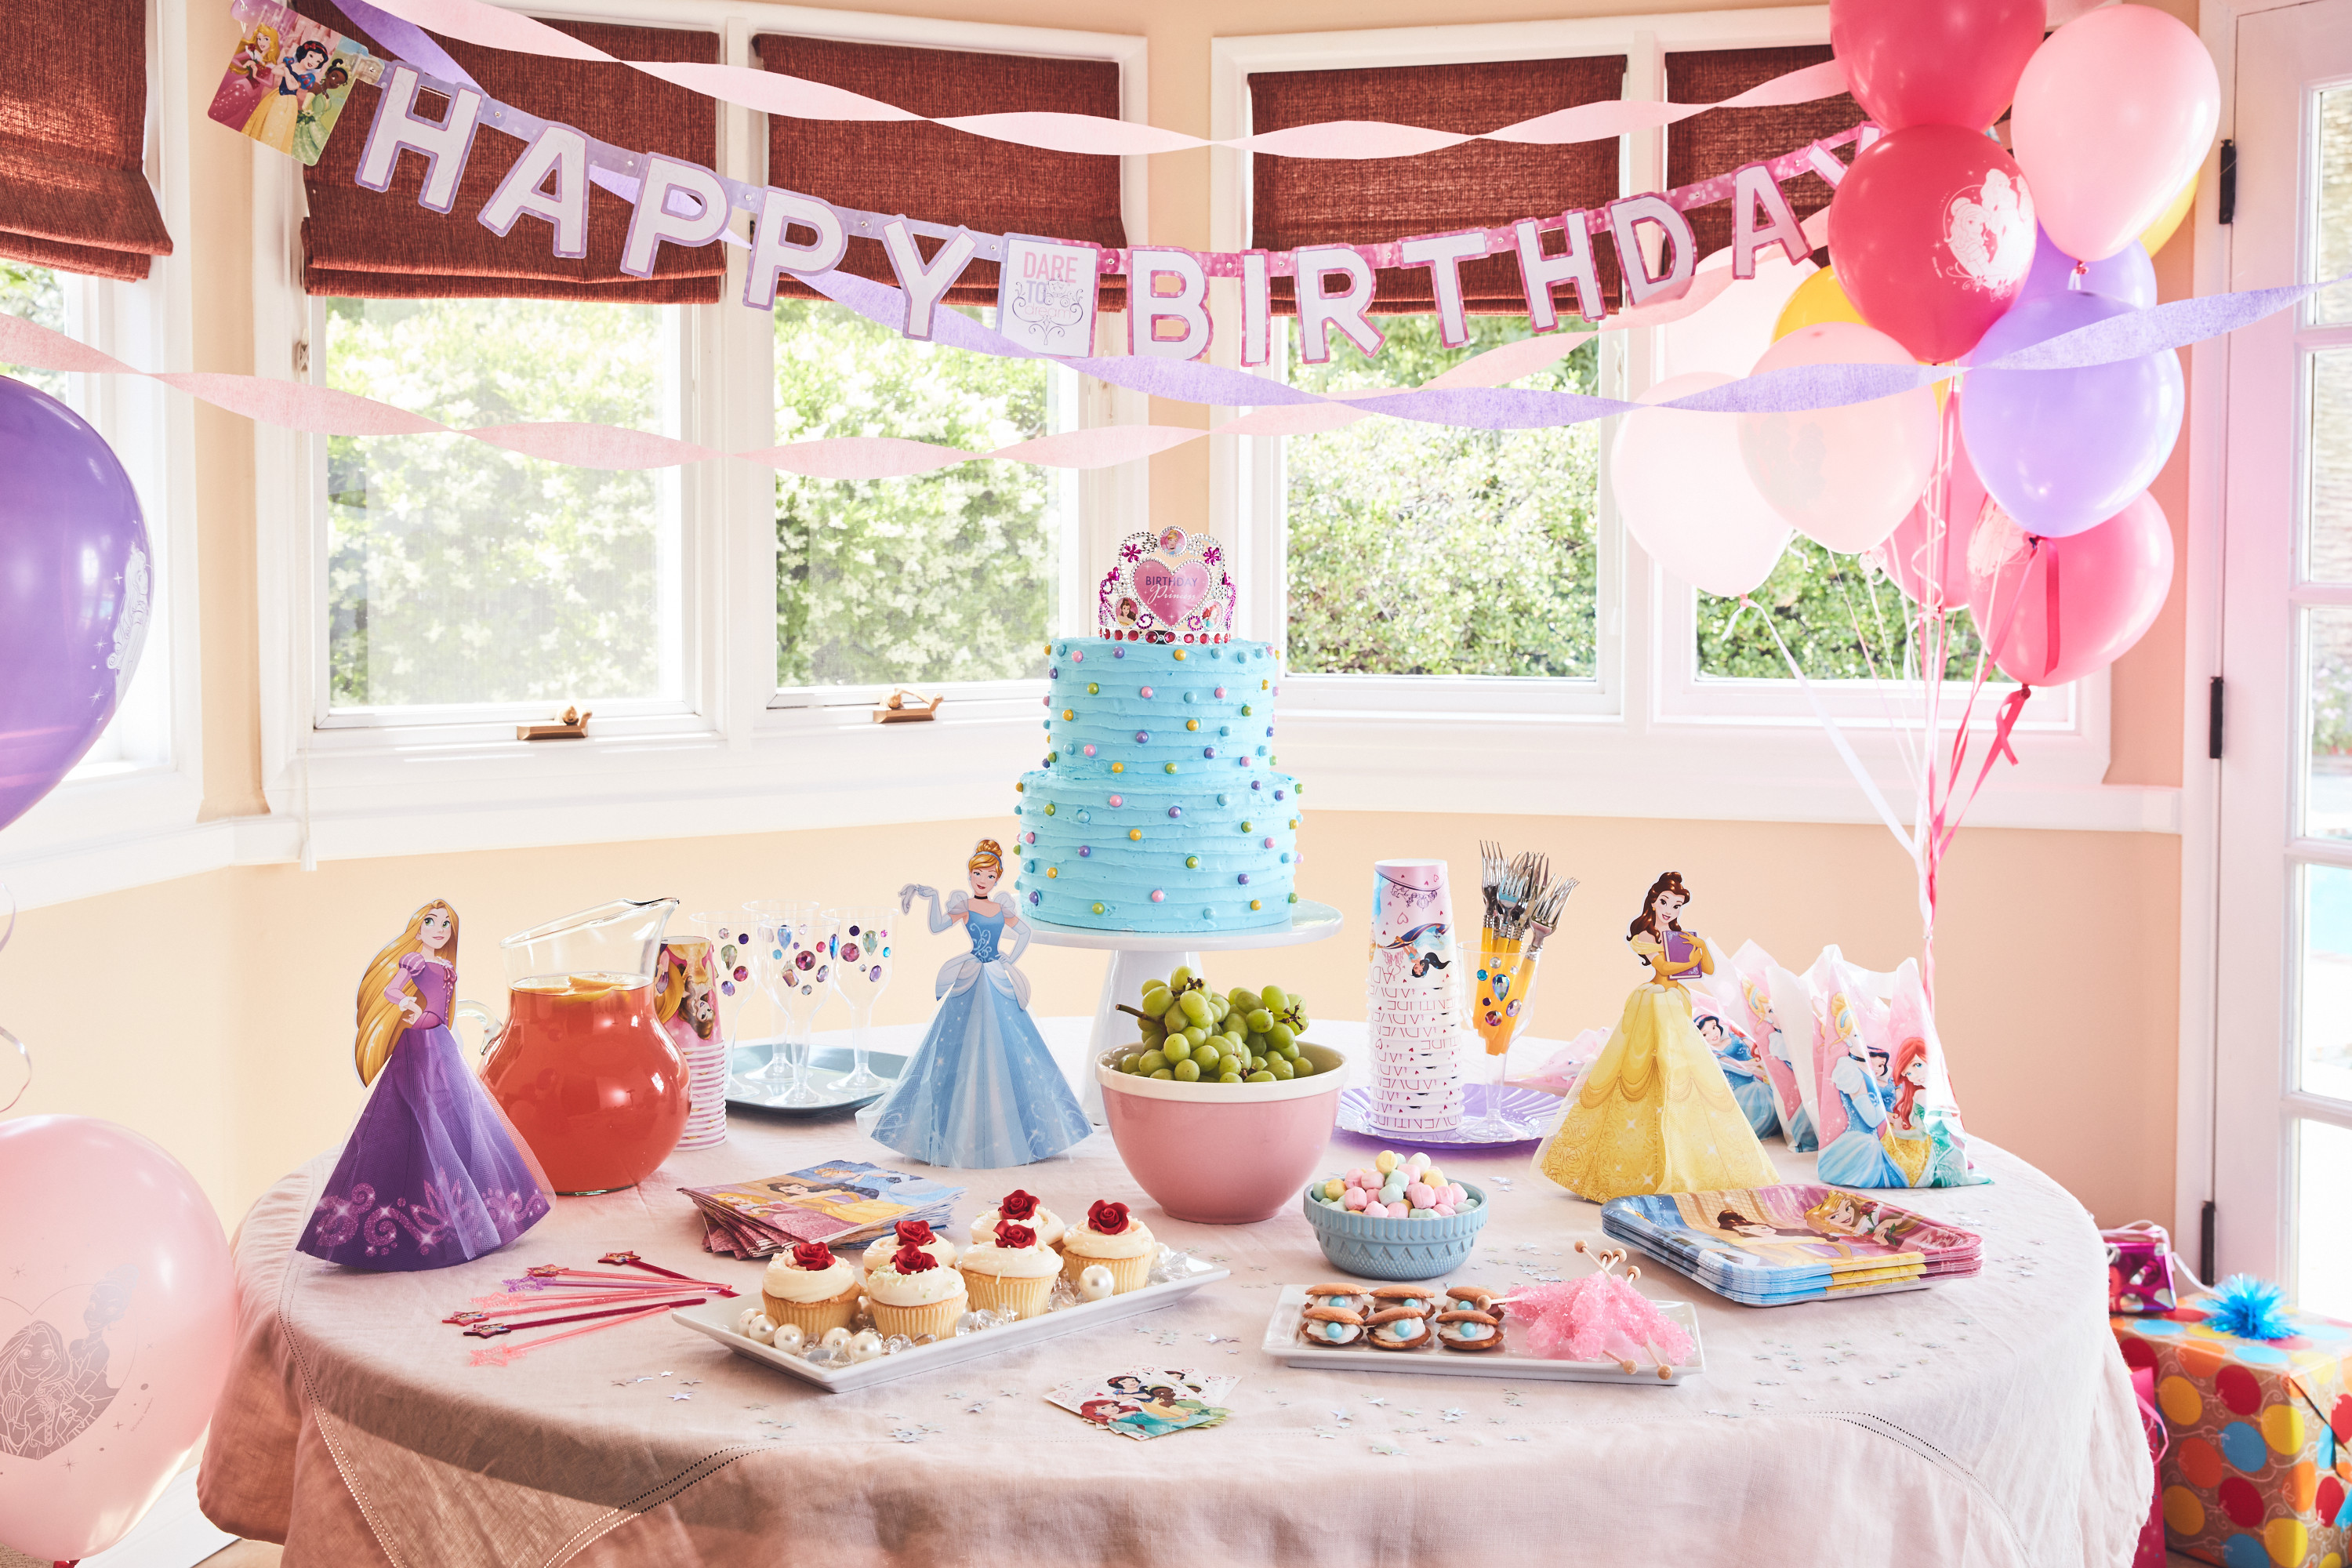 Best ideas about Disneyland Birthday Party . Save or Pin Disney Princess Birthday Party Now.